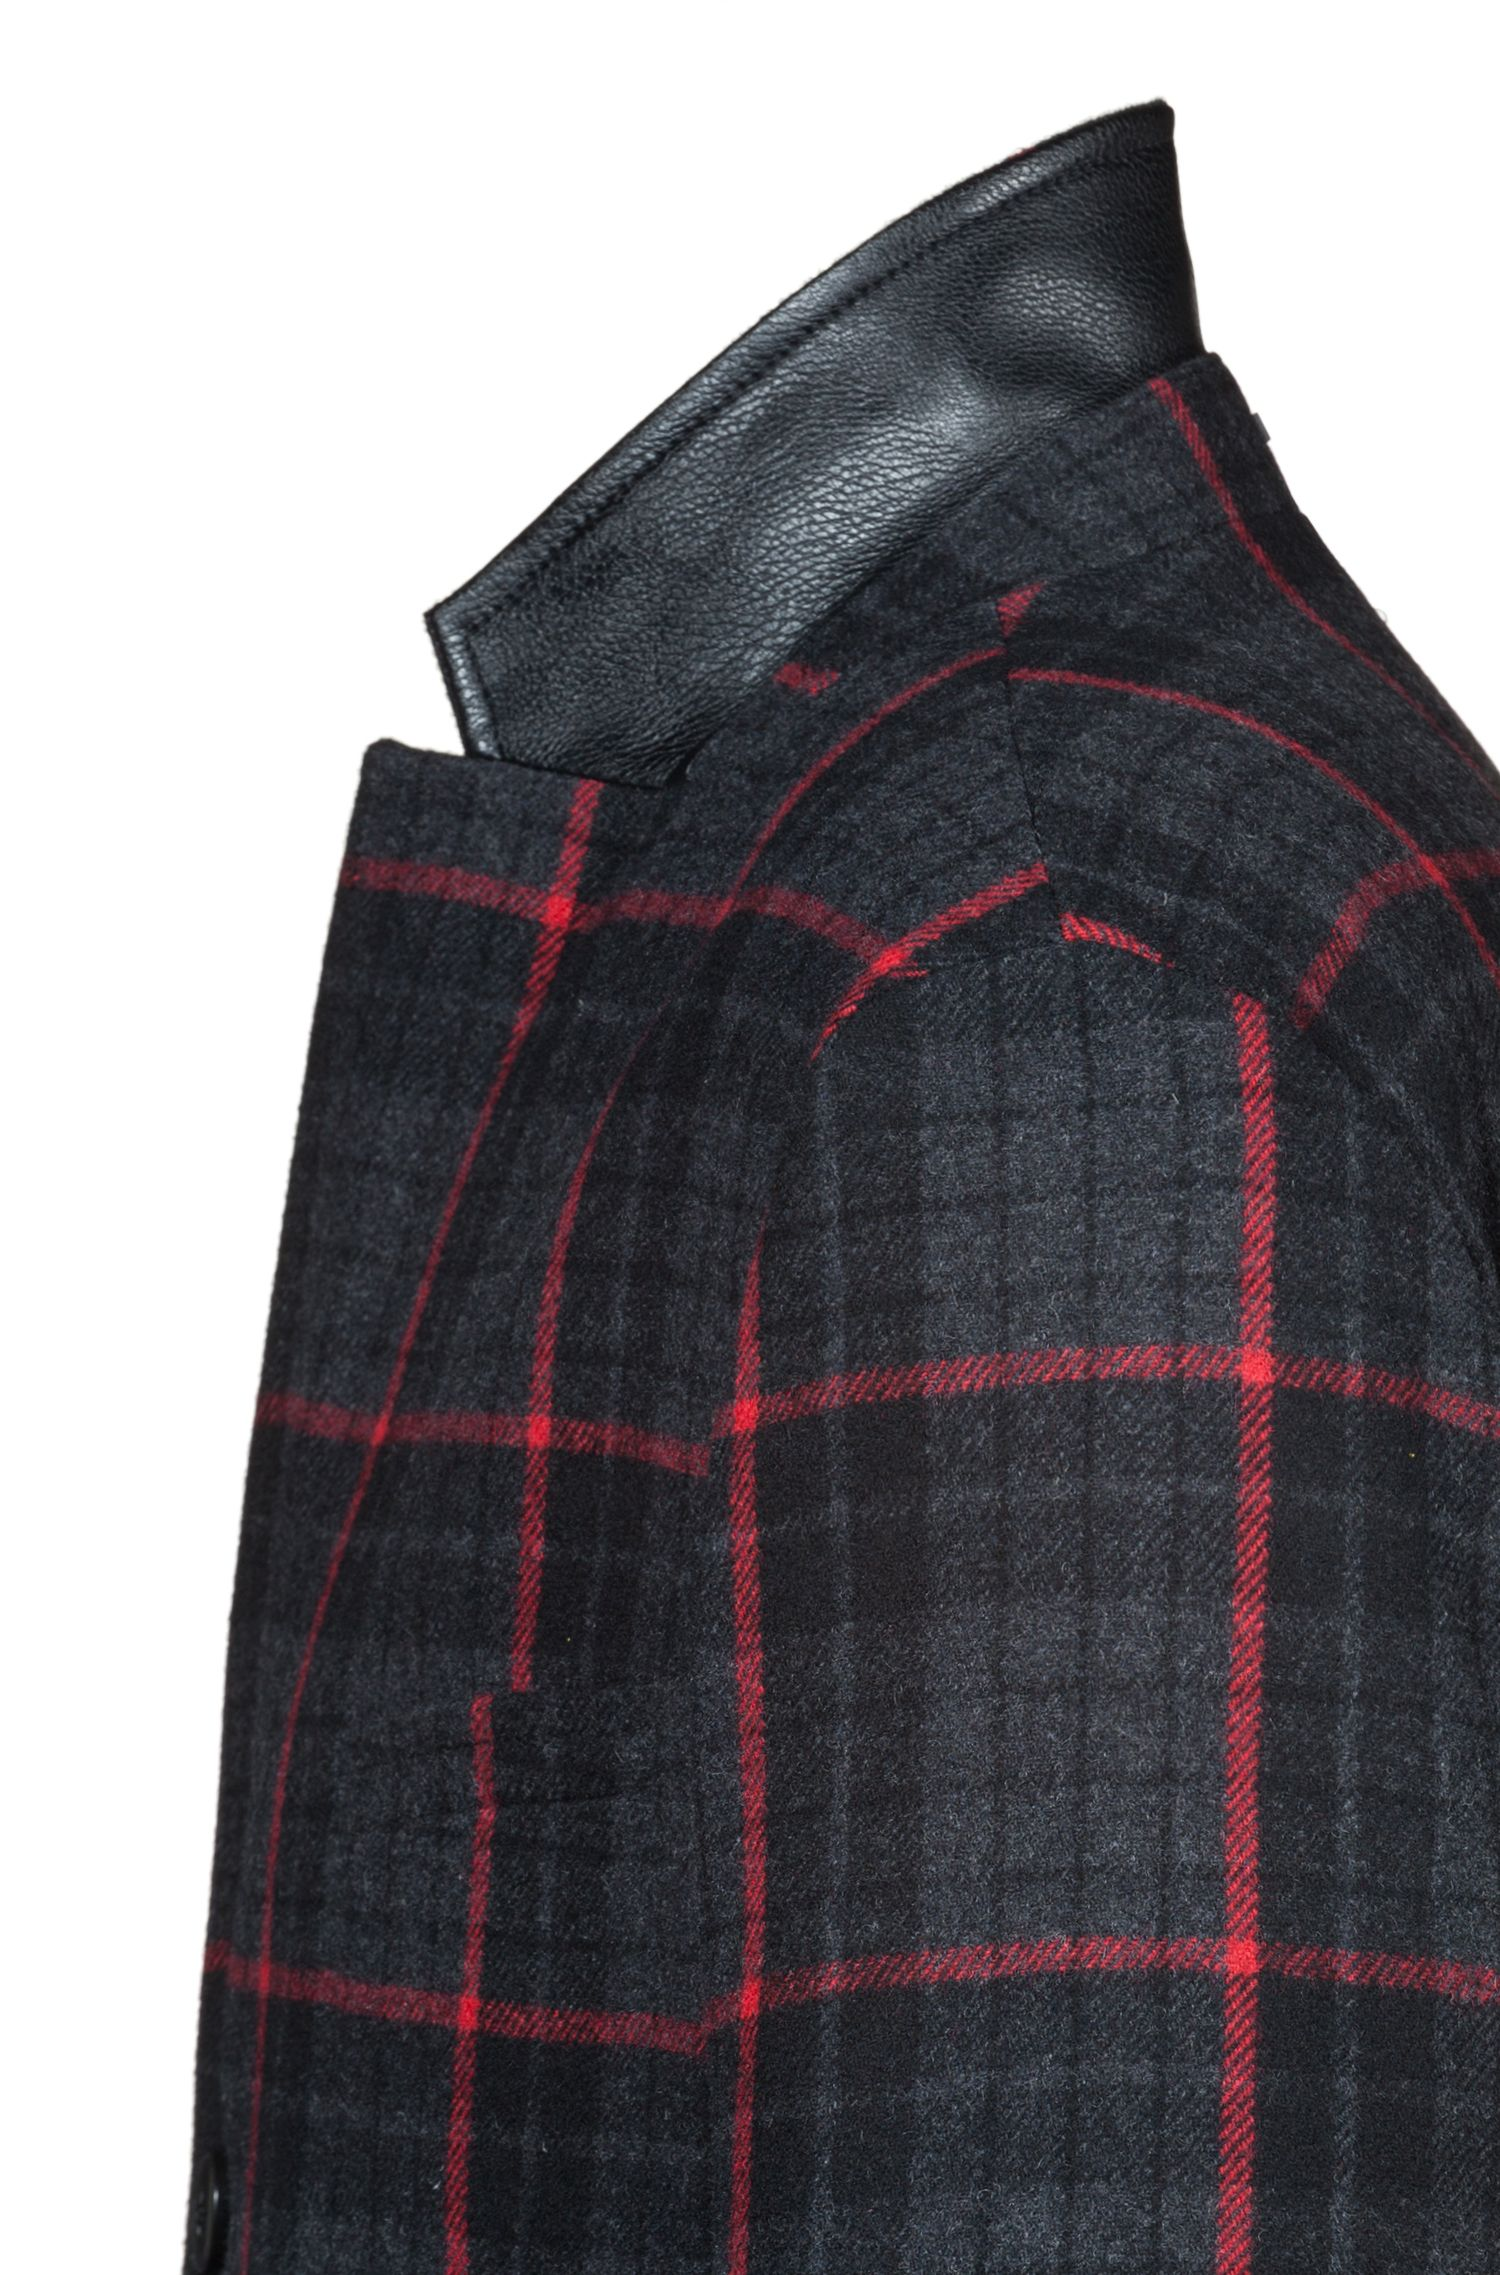 Glen check slim-fit coat in a wool blend, Charcoal